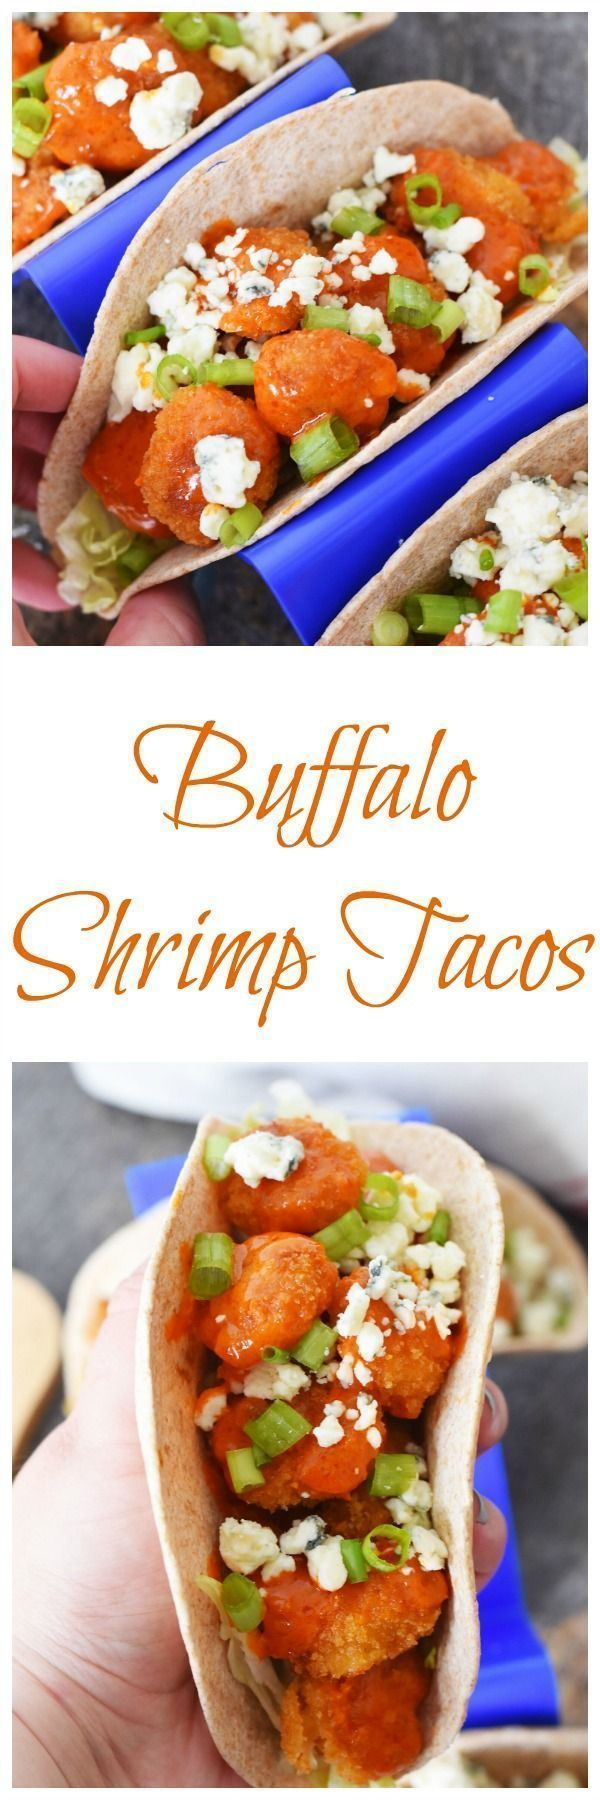 Quick and Tasty Buffalo Shrimp Tacos #buffaloshrimp Quick and Tasty Buffalo Shrimp Tacos-A quick meal idea, loaded with so much flavor! Ideal for quick summer meals when time is short, but you want flavor! #AD @GortonsSeafood #TrustGortons #shrimptacos #buffalo #buffaloshrimp Quick and Tasty Buffalo Shrimp Tacos #buffaloshrimp Quick and Tasty Buffalo Shrimp Tacos-A quick meal idea, loaded with so much flavor! Ideal for quick summer meals when time is short, but you want flavor! #AD @GortonsSeafo #buffaloshrimp